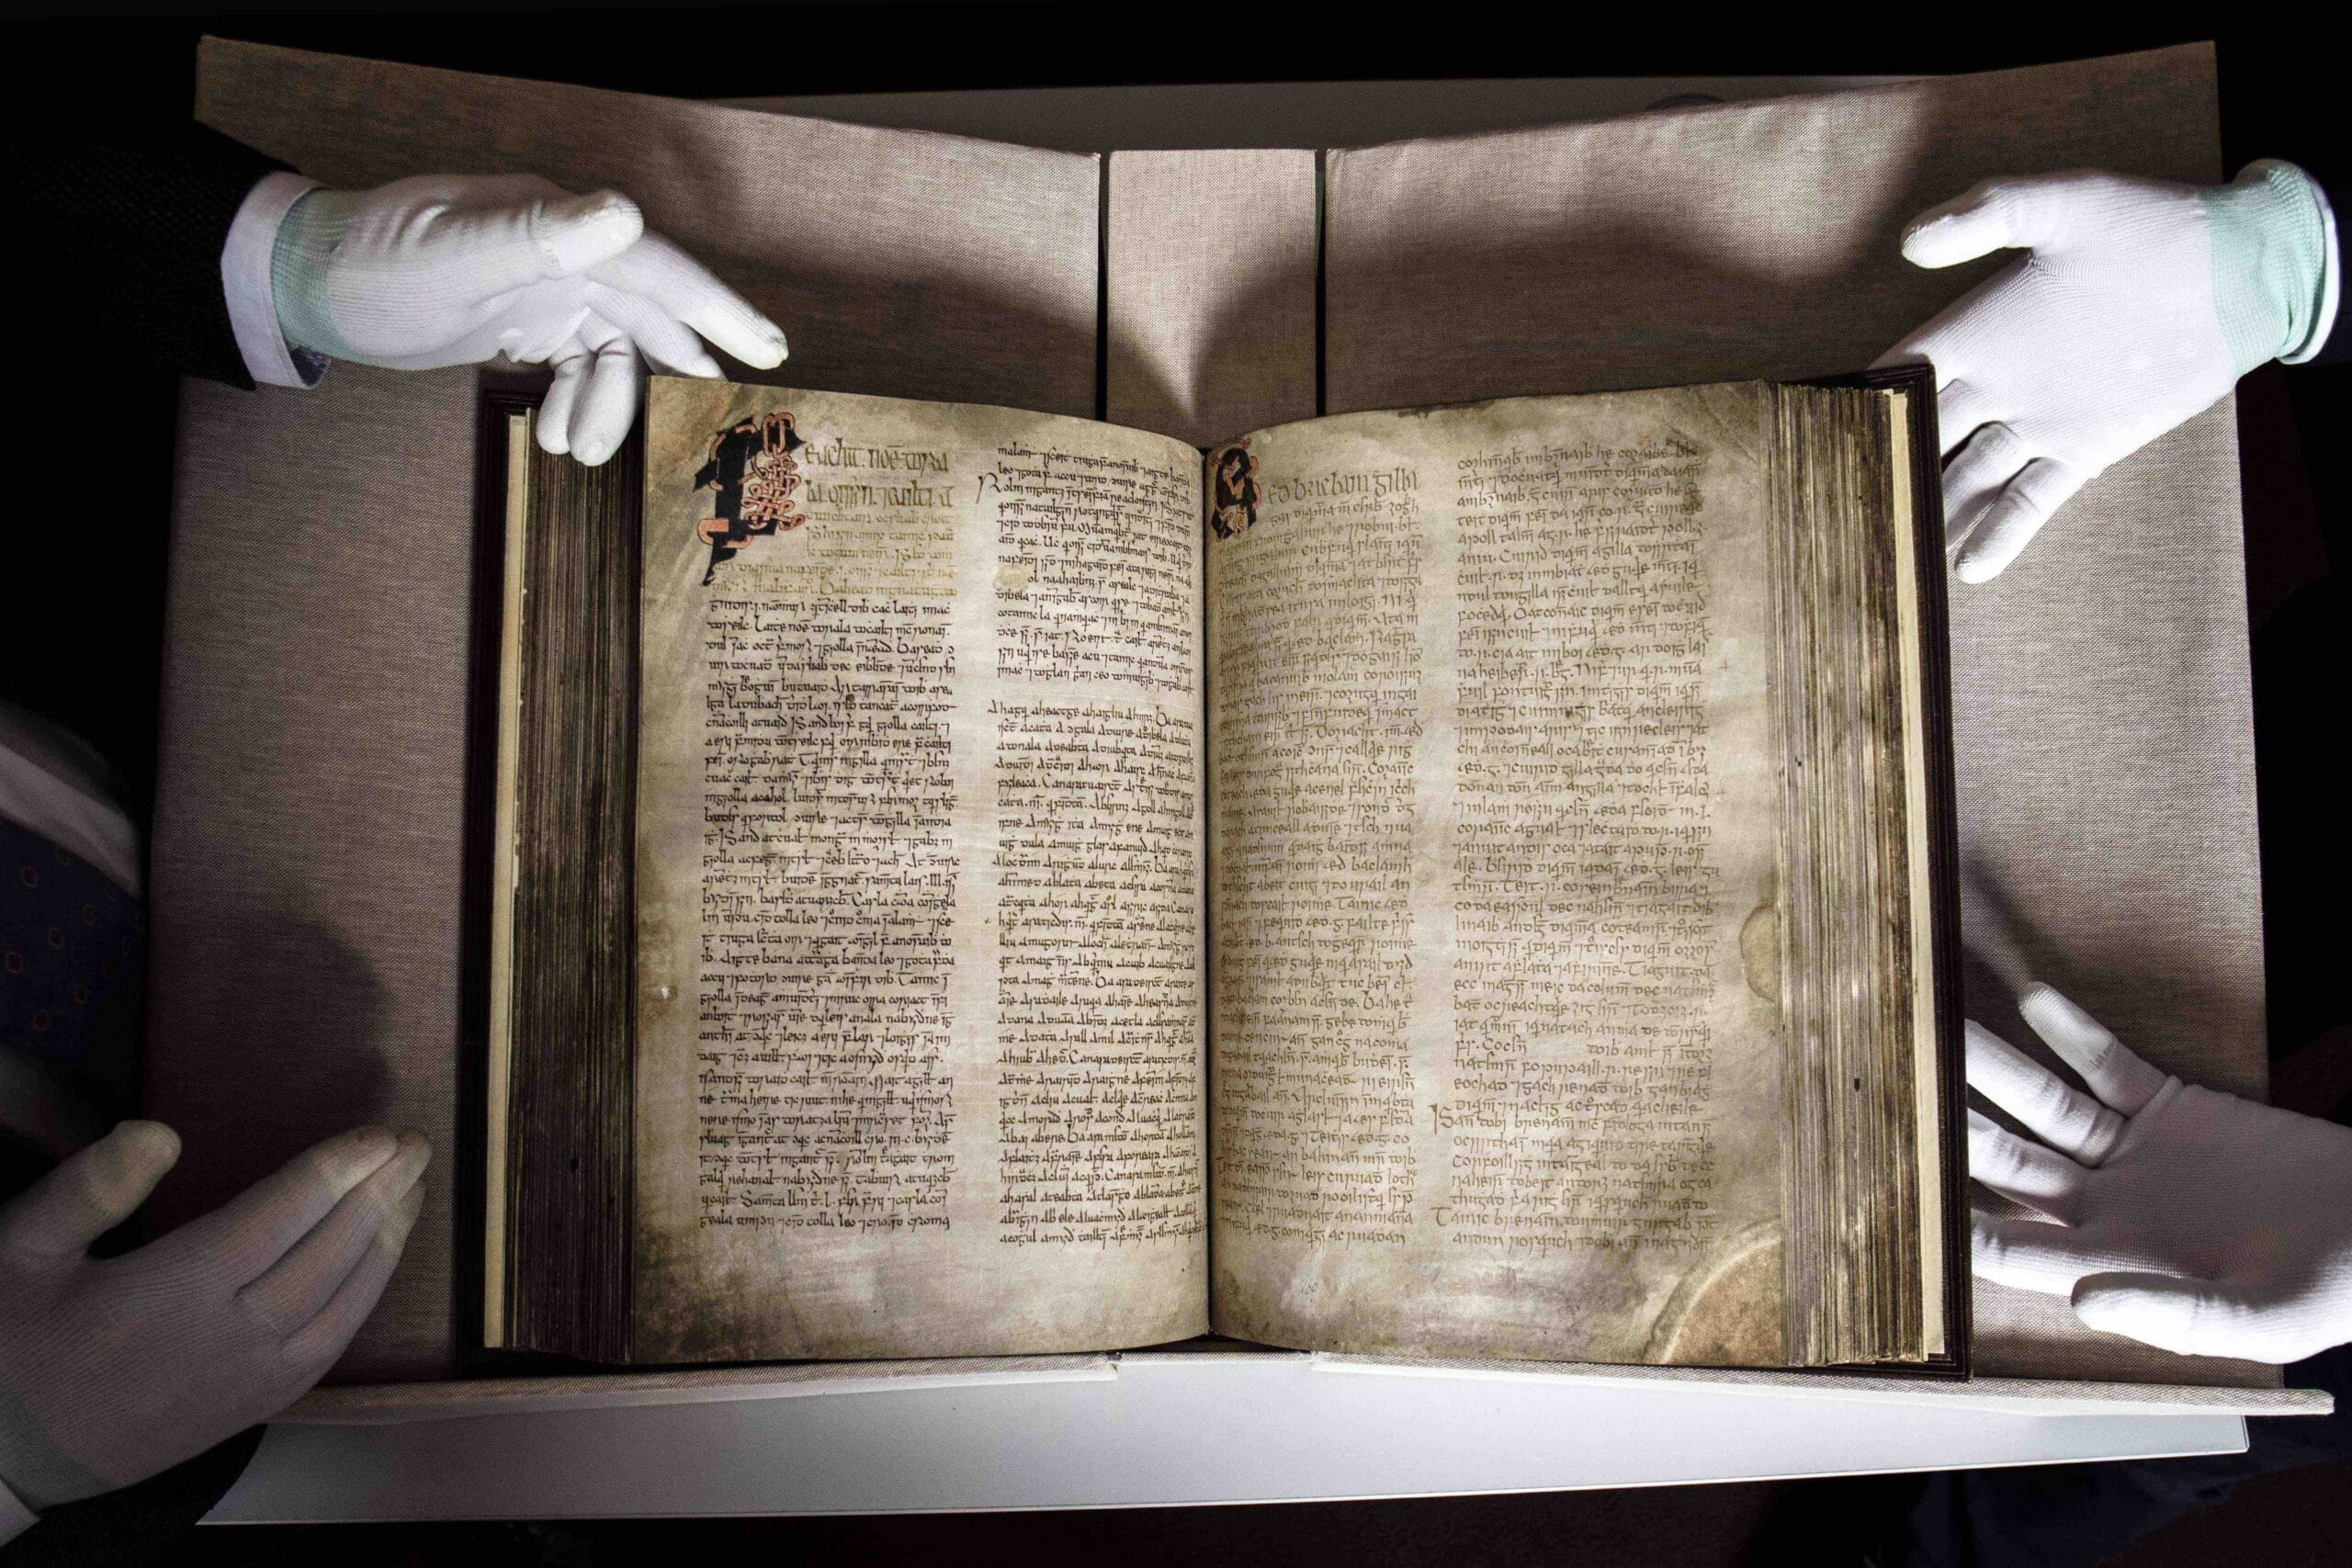 One of the Great Books of Ireland created in West Cork returns home